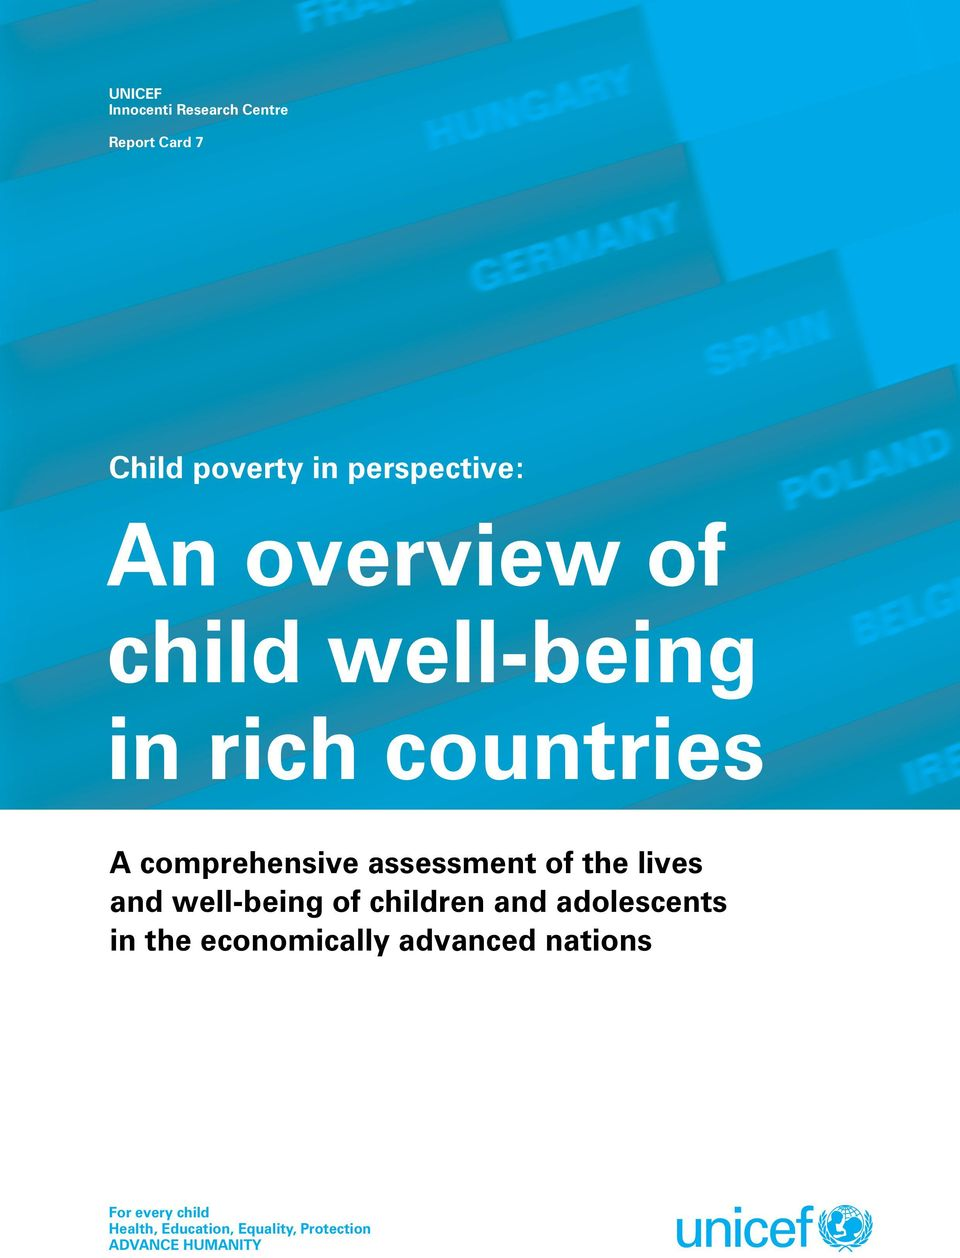 the lives and well-being of children and adolescents in the economically